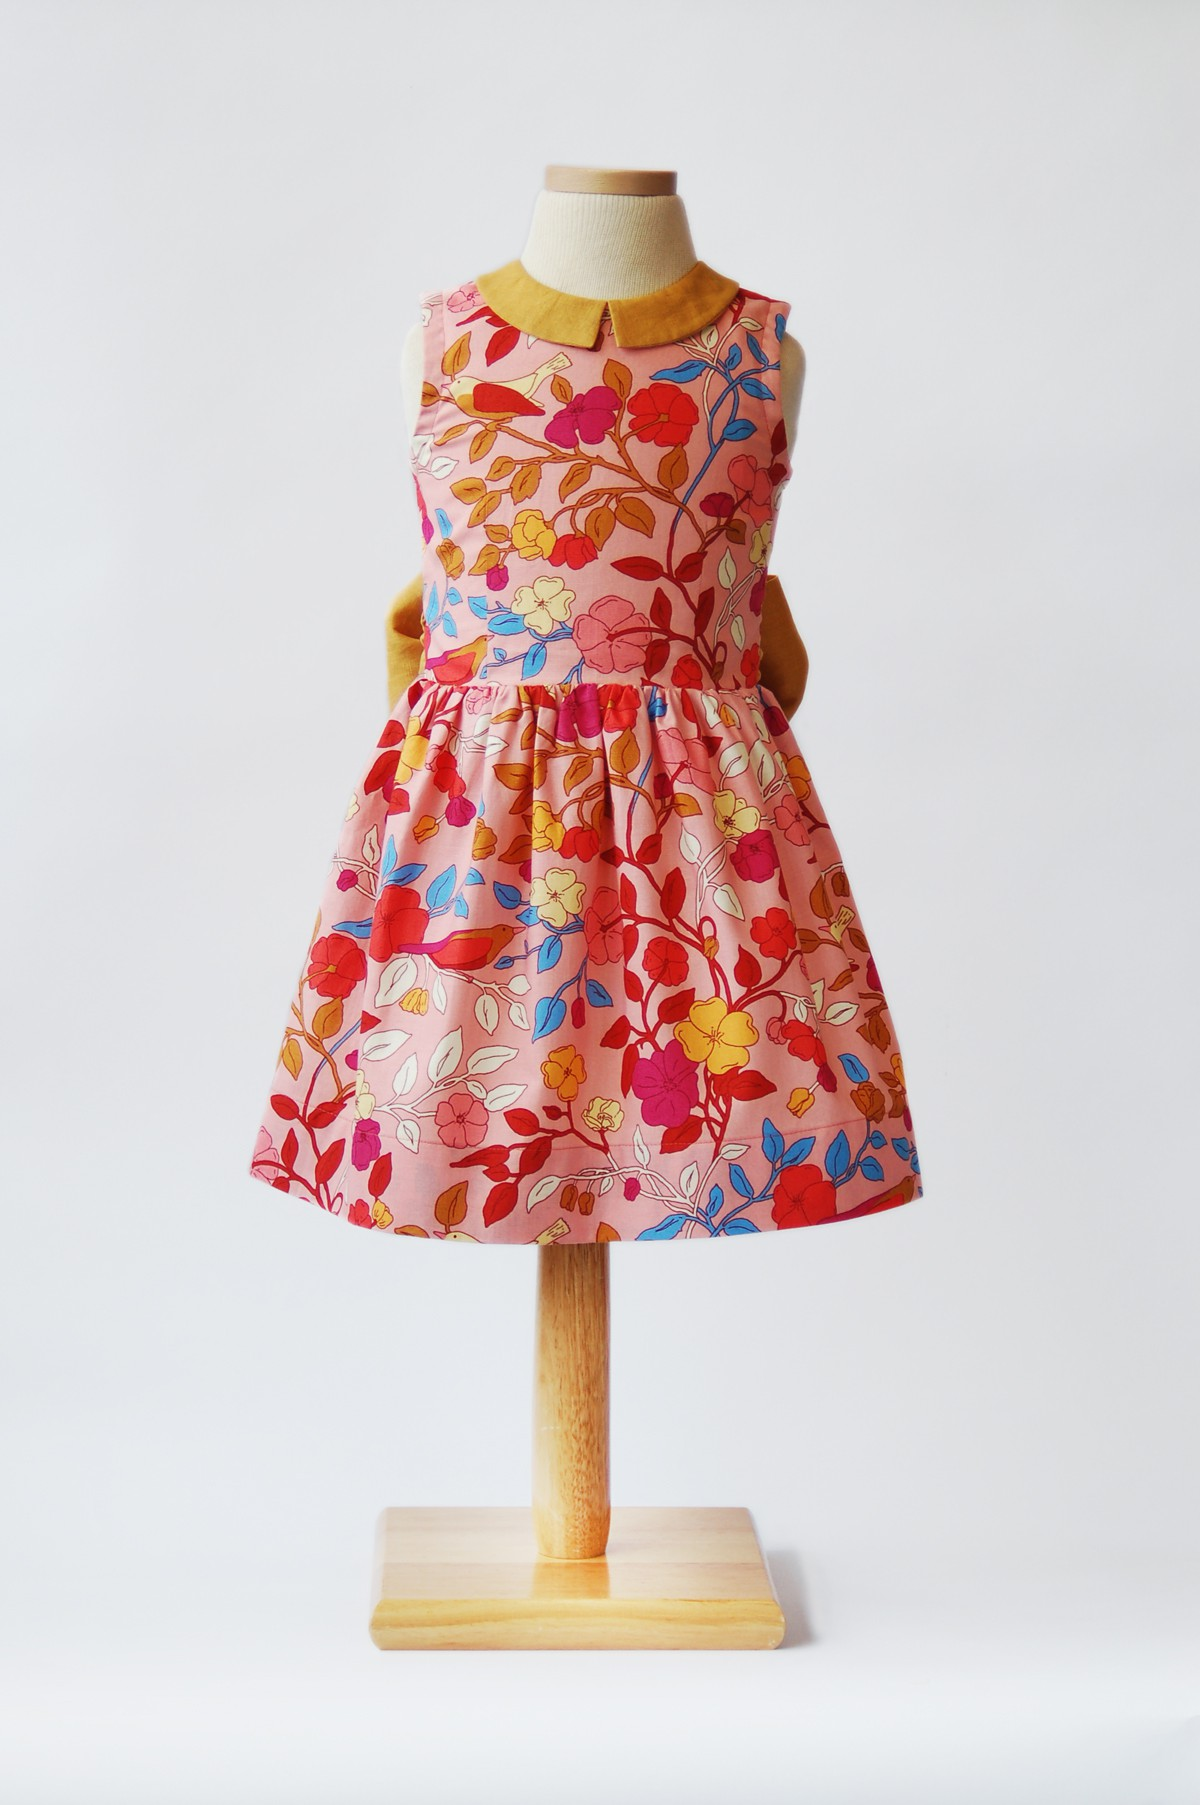 Introducing The Fairy Tale Dress Sewing Pattern